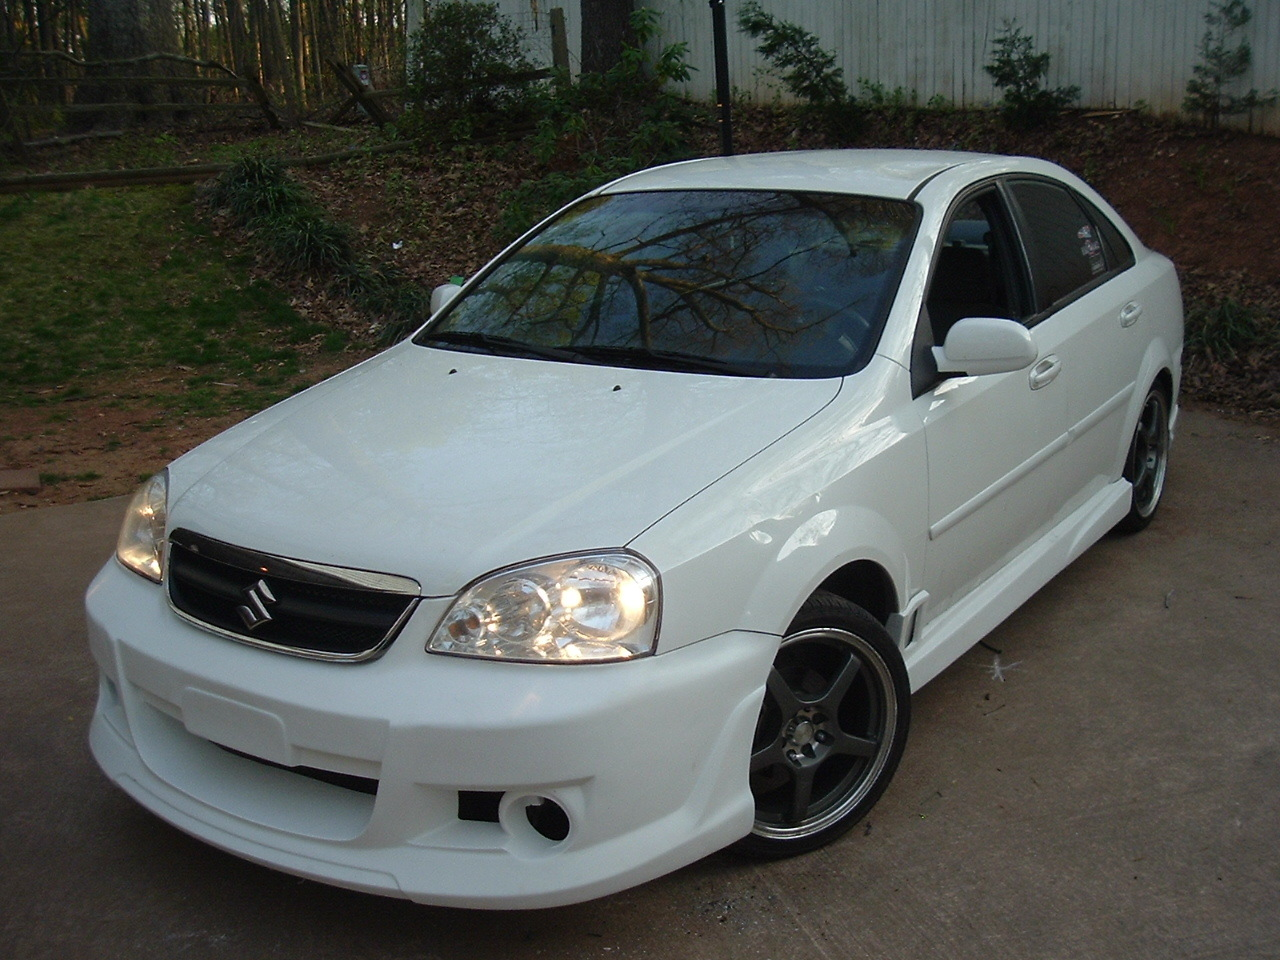 anthony73's 2006 Suzuki Forenza